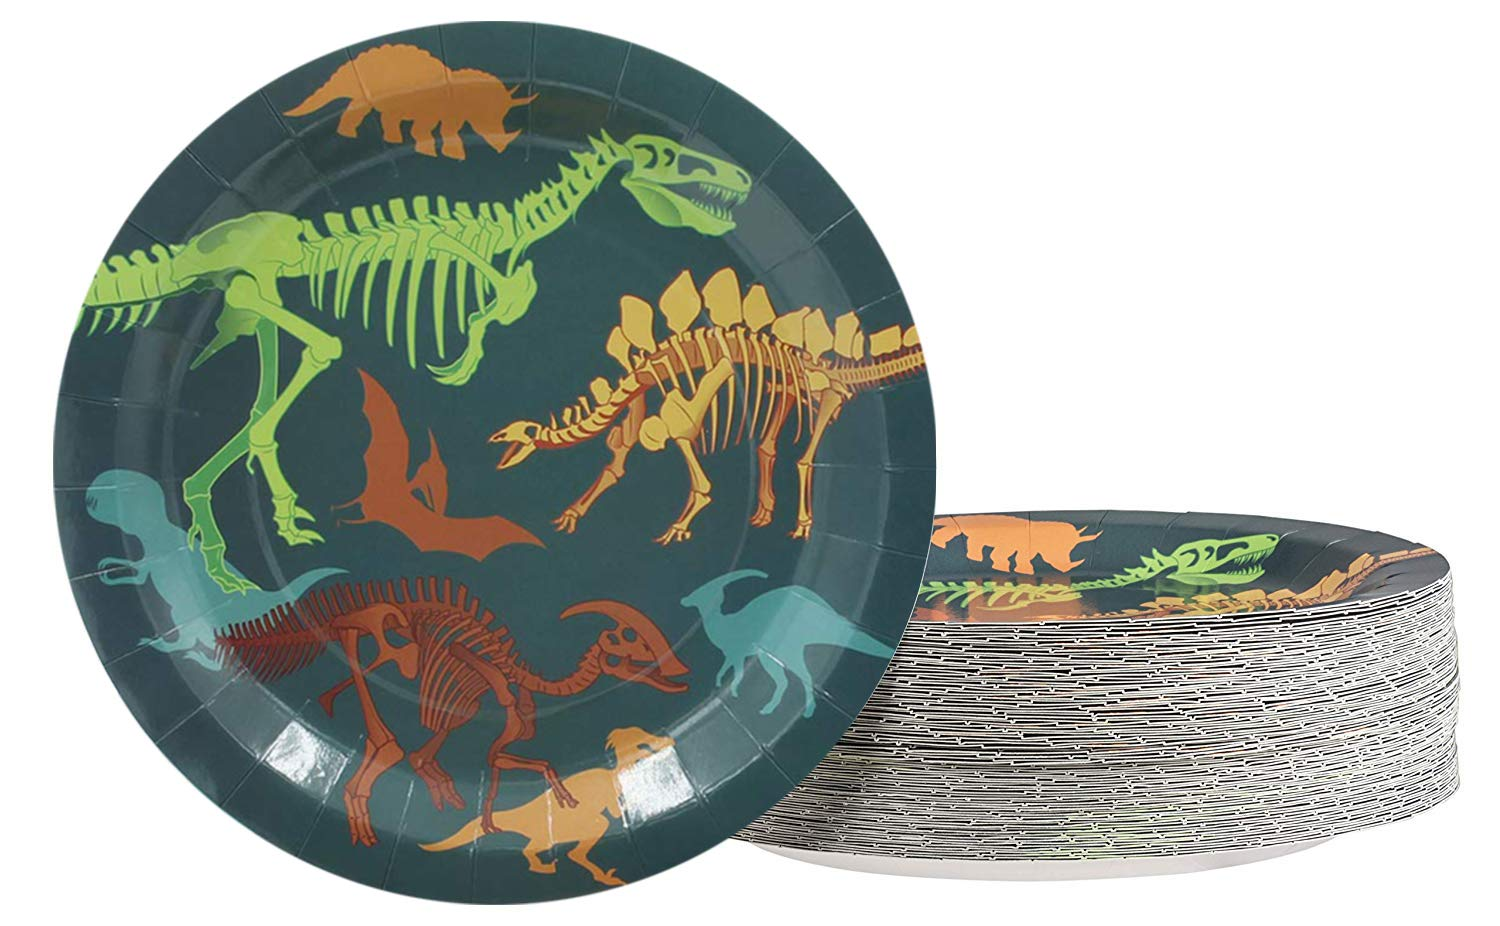 Dinosaur Plates - 80-Pack Dino Plates with Fossil Skeleton Print, Dinosaur Themed Kids Birthday Party Supplies, 9-Inch Round Cake Plates, Lunch, Dessert by Juvale